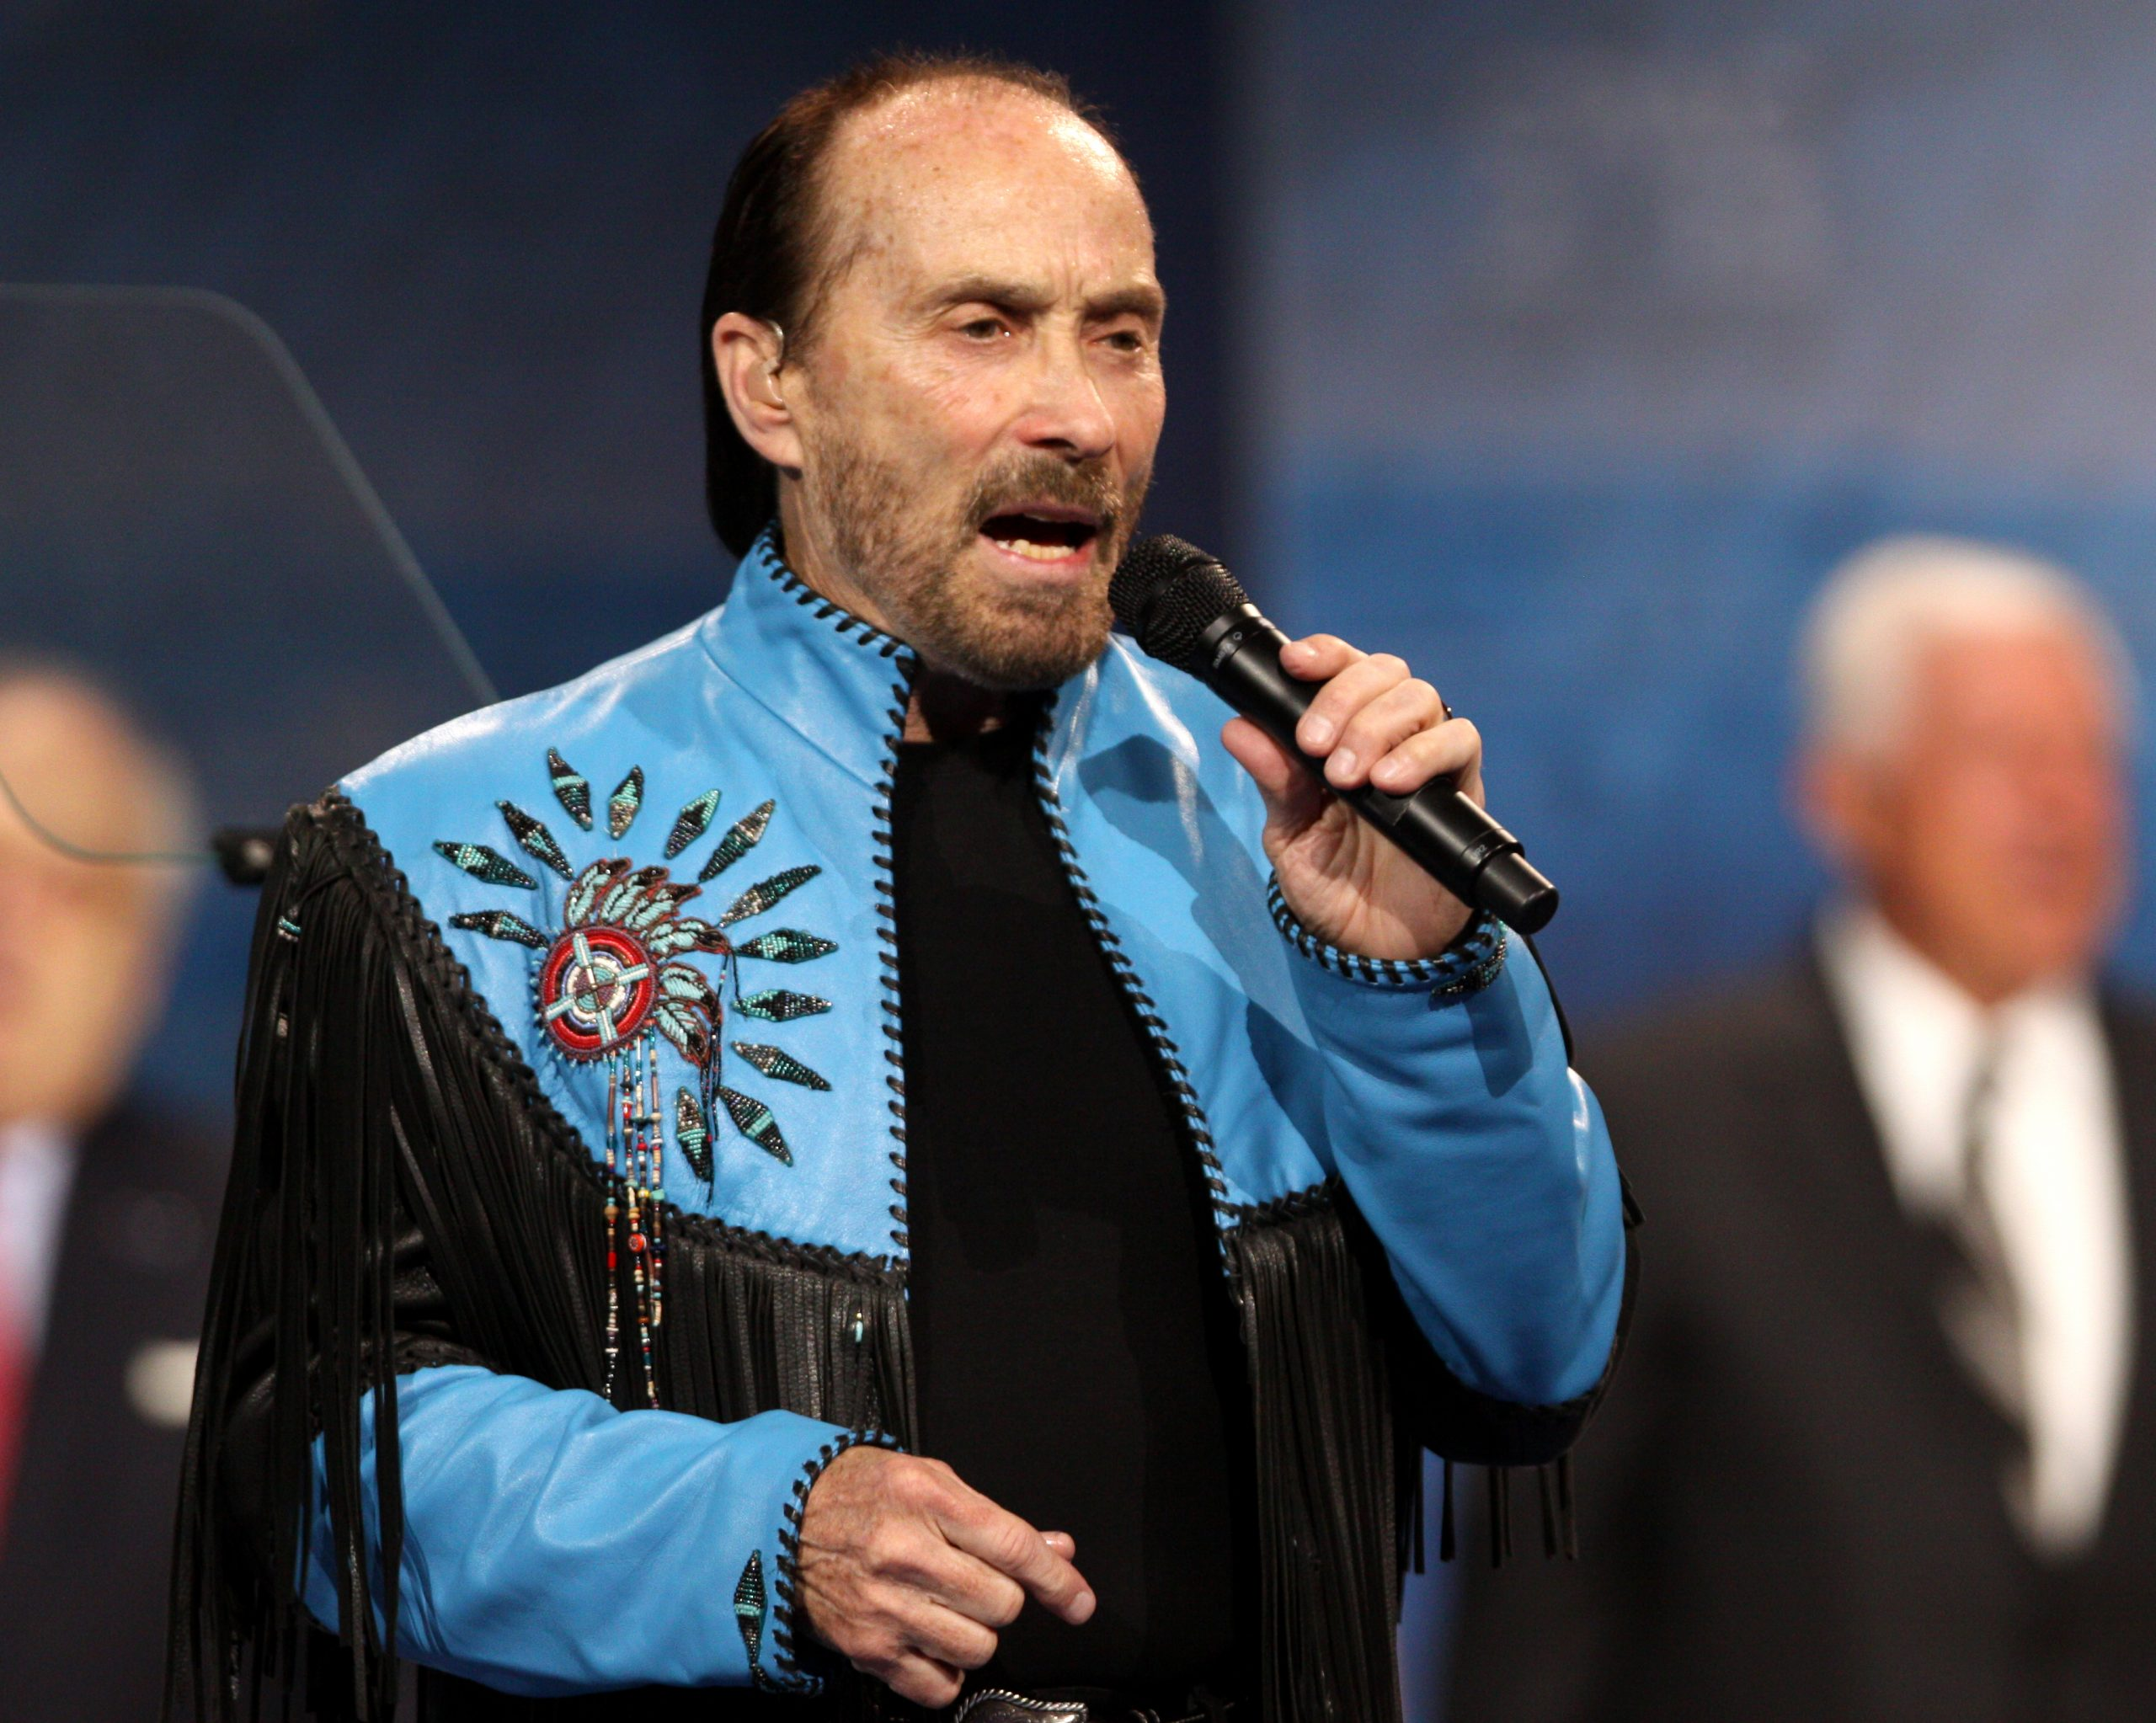 Lee Greenwood to Perform at del Lago in June